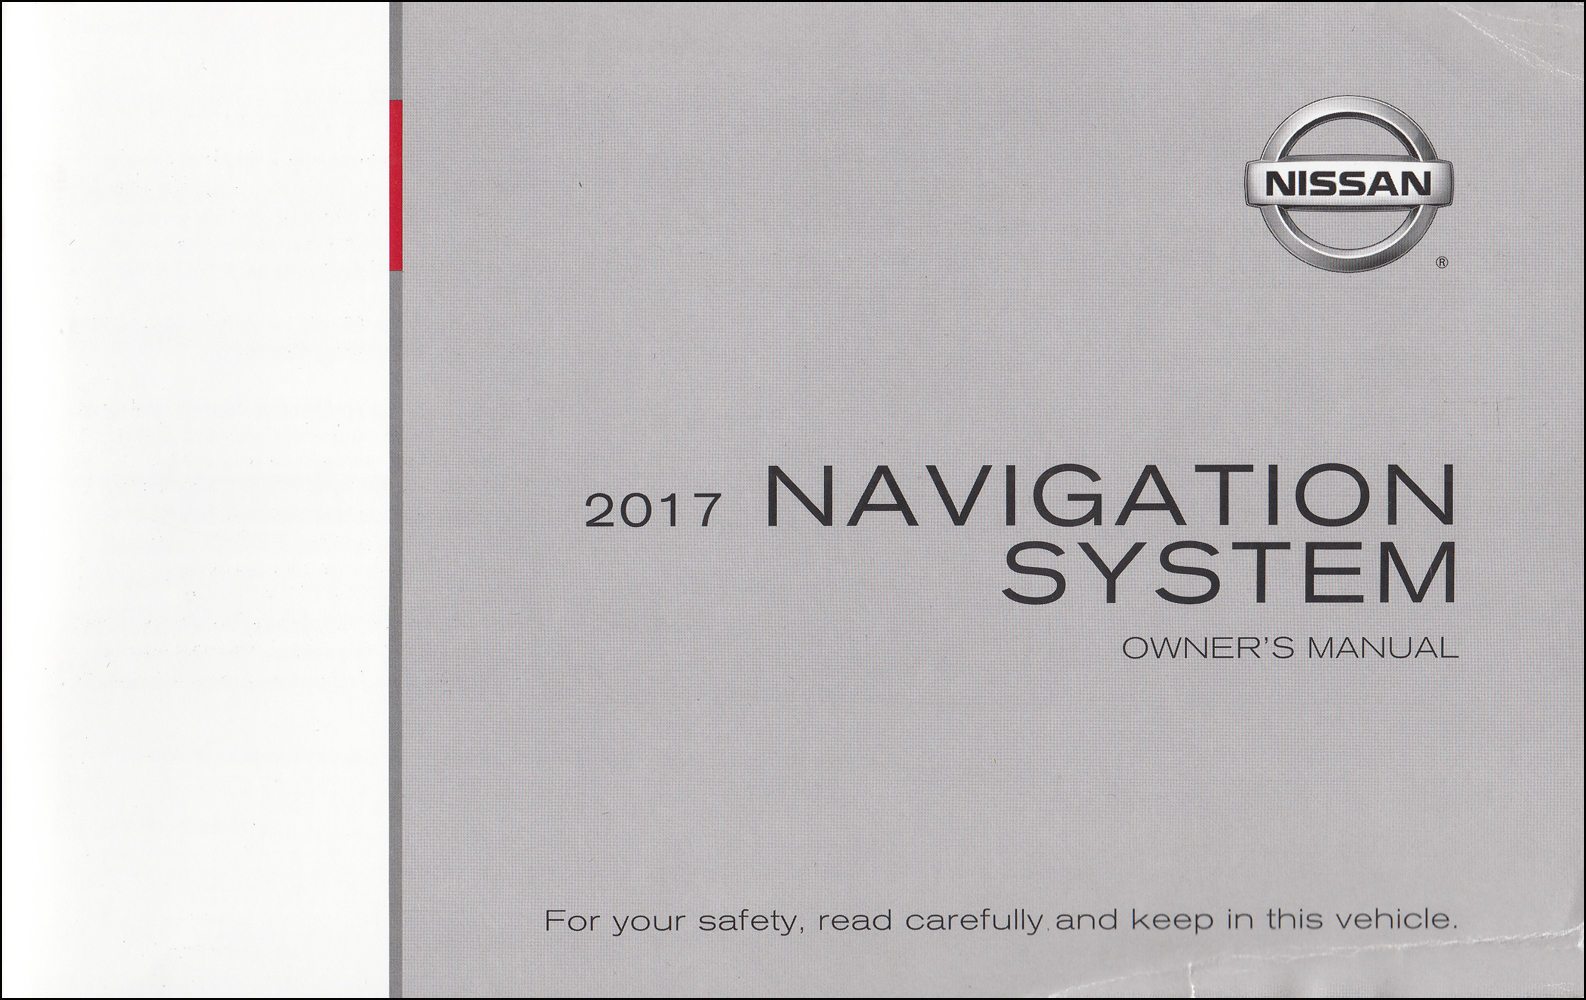 2017 Nissan Navigation System Owners Manual Original Rogue, Rogue Sport, Altima, Titan